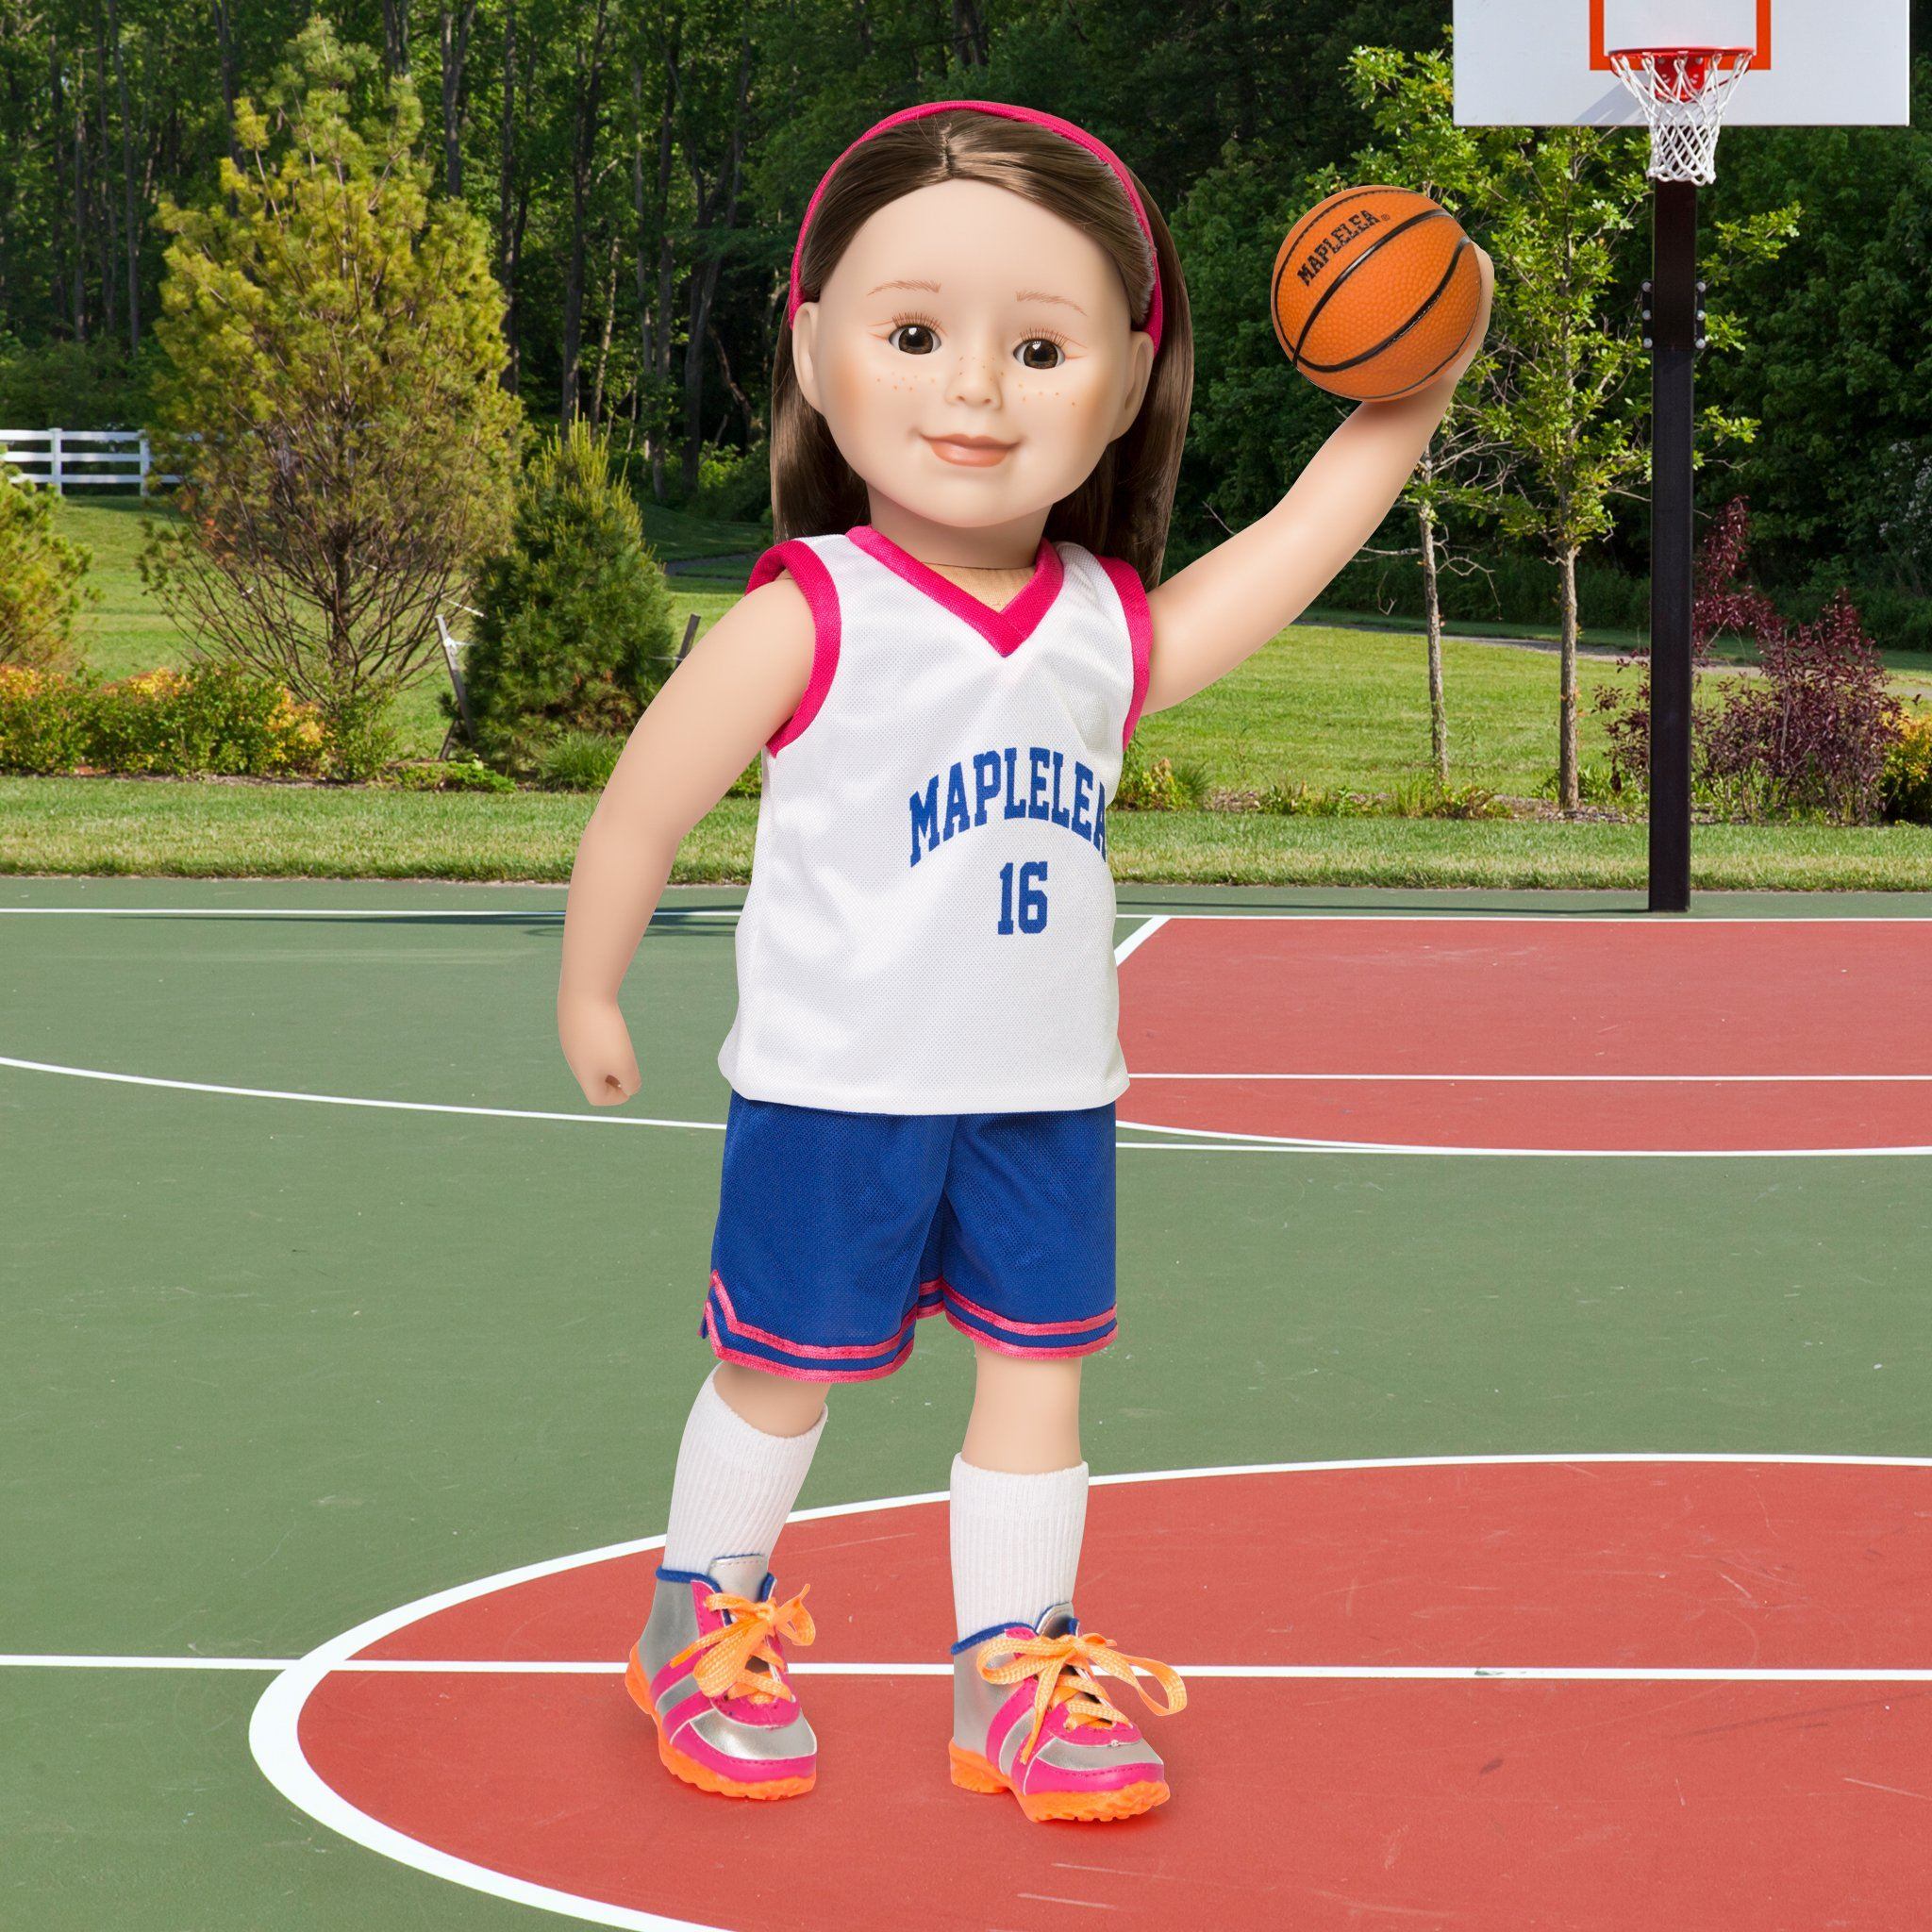 slam dunk reversible white and blue basketball jersey, blue shorts, white socks, fuchsia headband, basketball, silver and orange running shoes fits all 18 inch dolls.